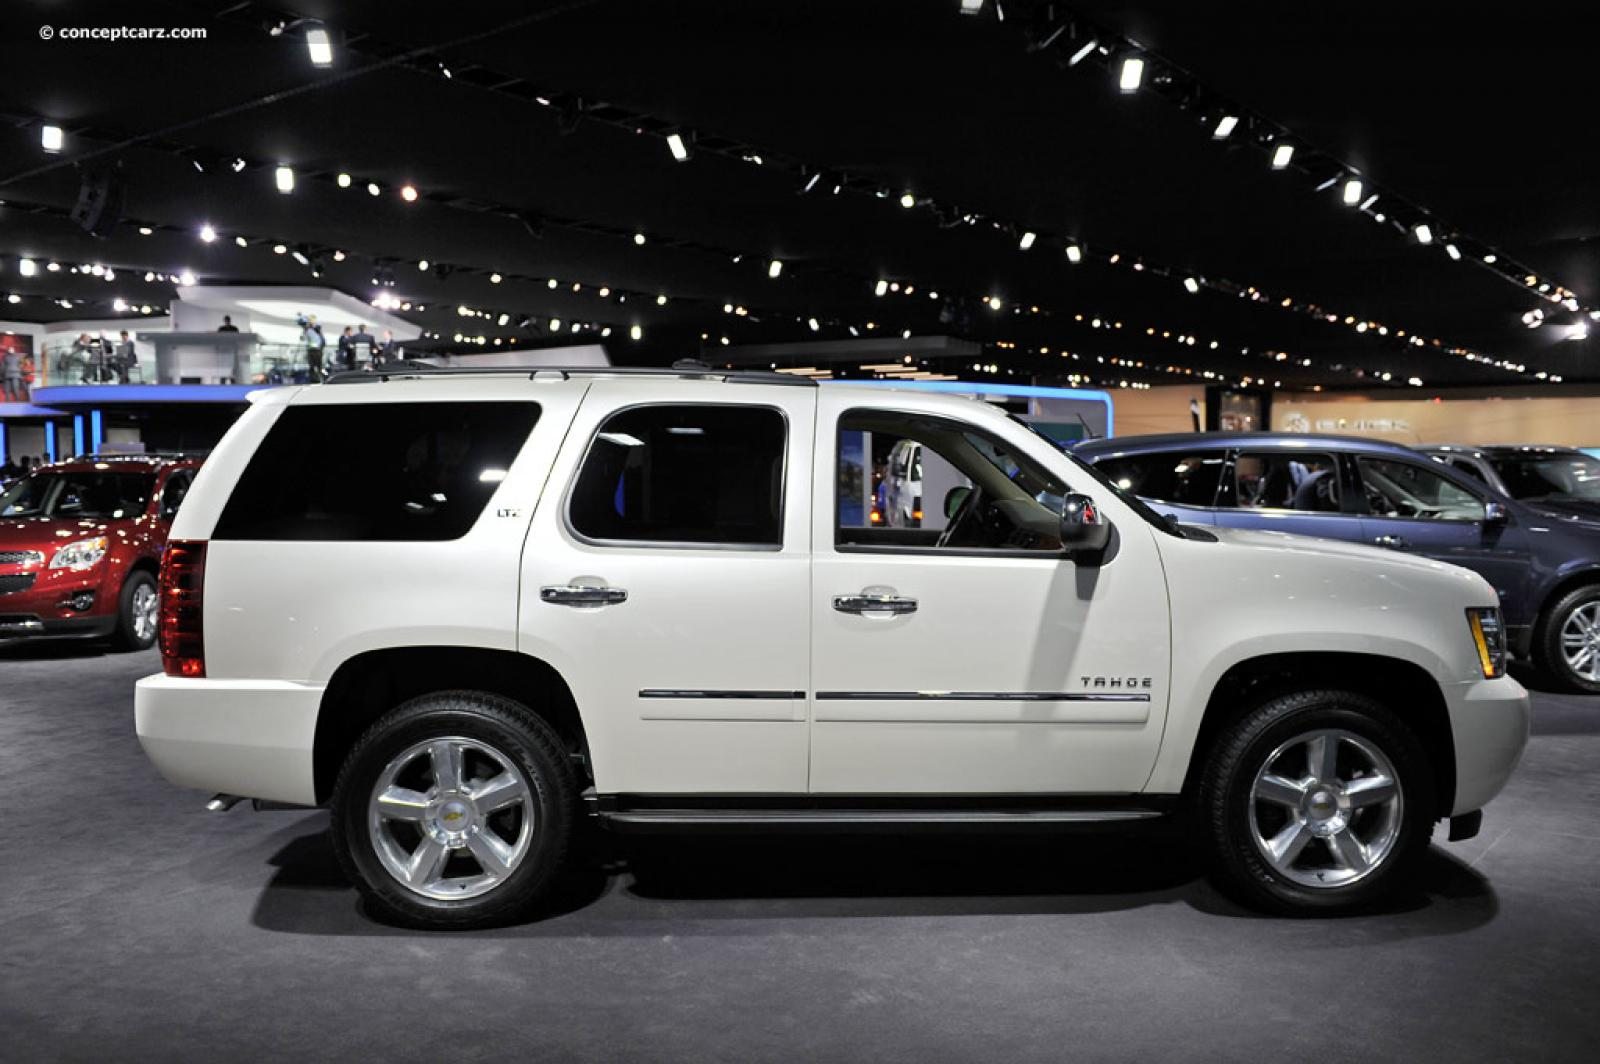 2013 chevrolet tahoe information and photos zombiedrive. Black Bedroom Furniture Sets. Home Design Ideas